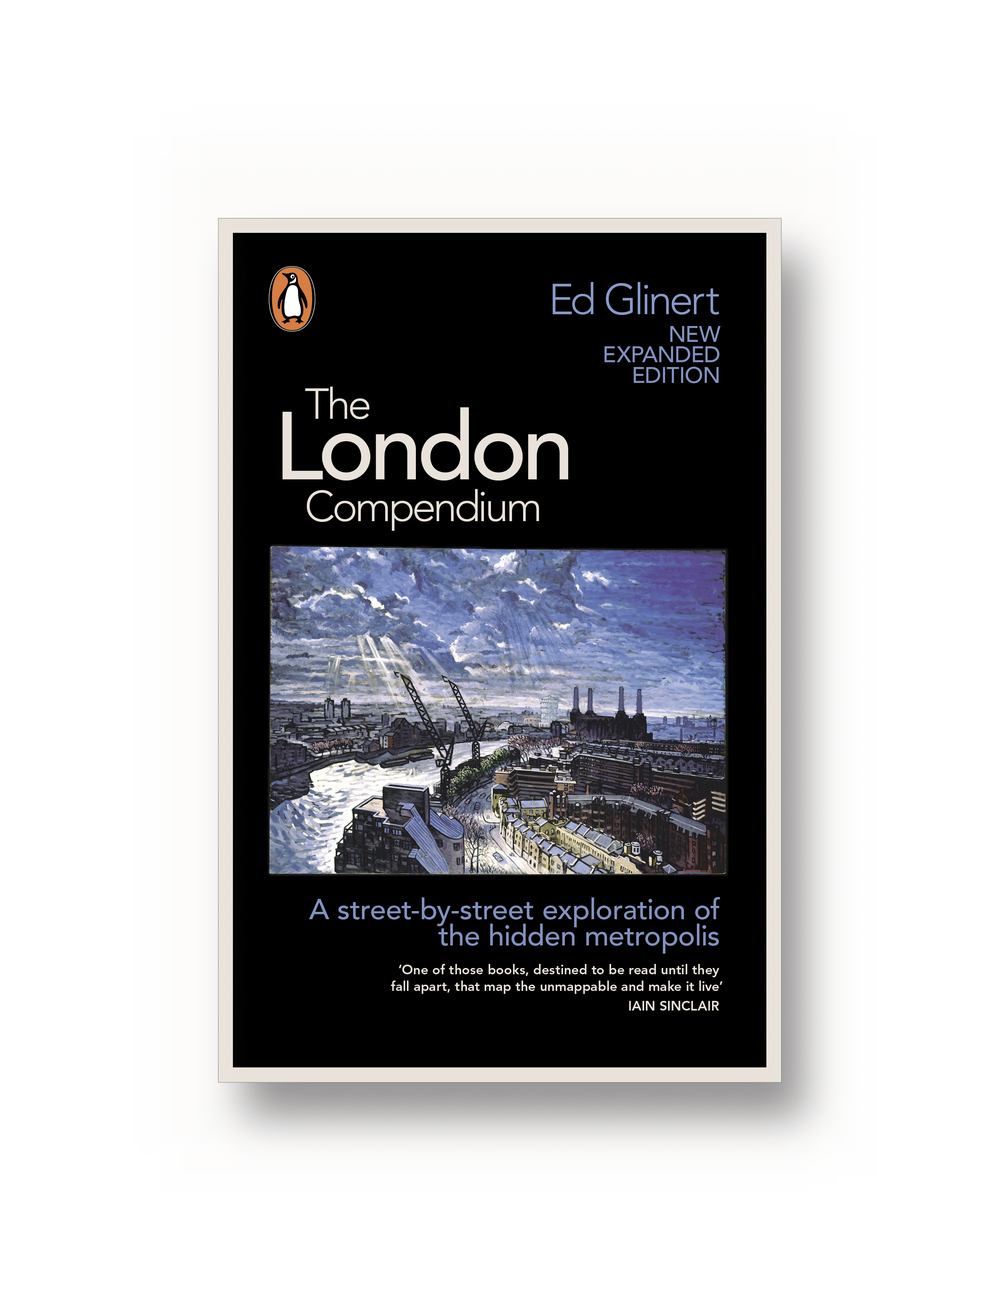 The London Compendium by Ed Gilbert - Design: Jim Stoddart Art: Paul Simonon